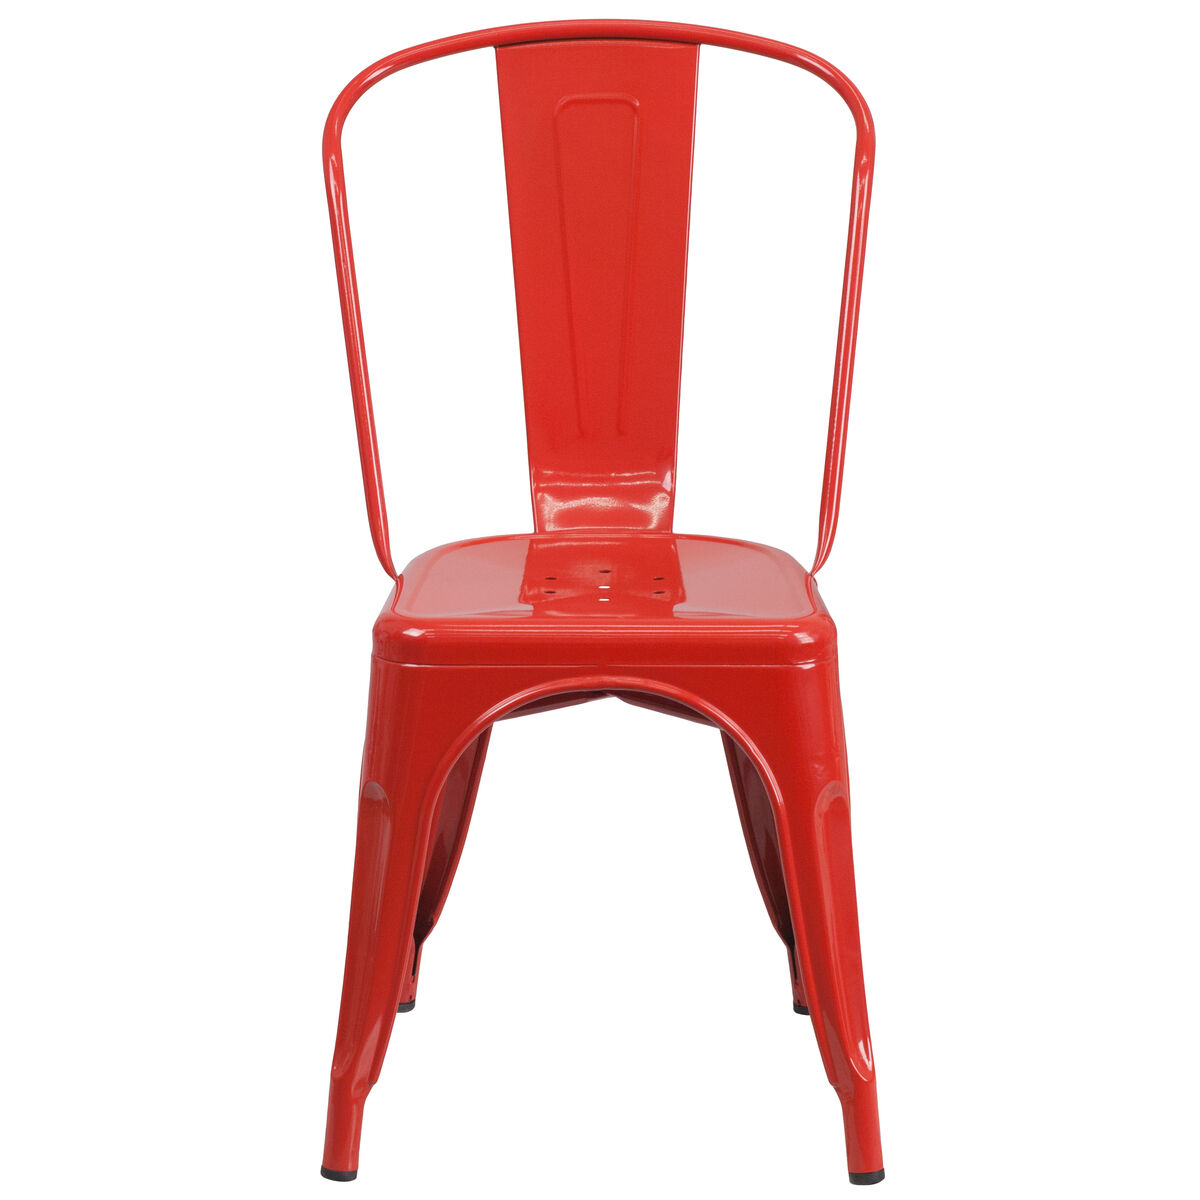 Red Metal Chair Ch 31230 Red Gg Restaurantfurniture4less Com